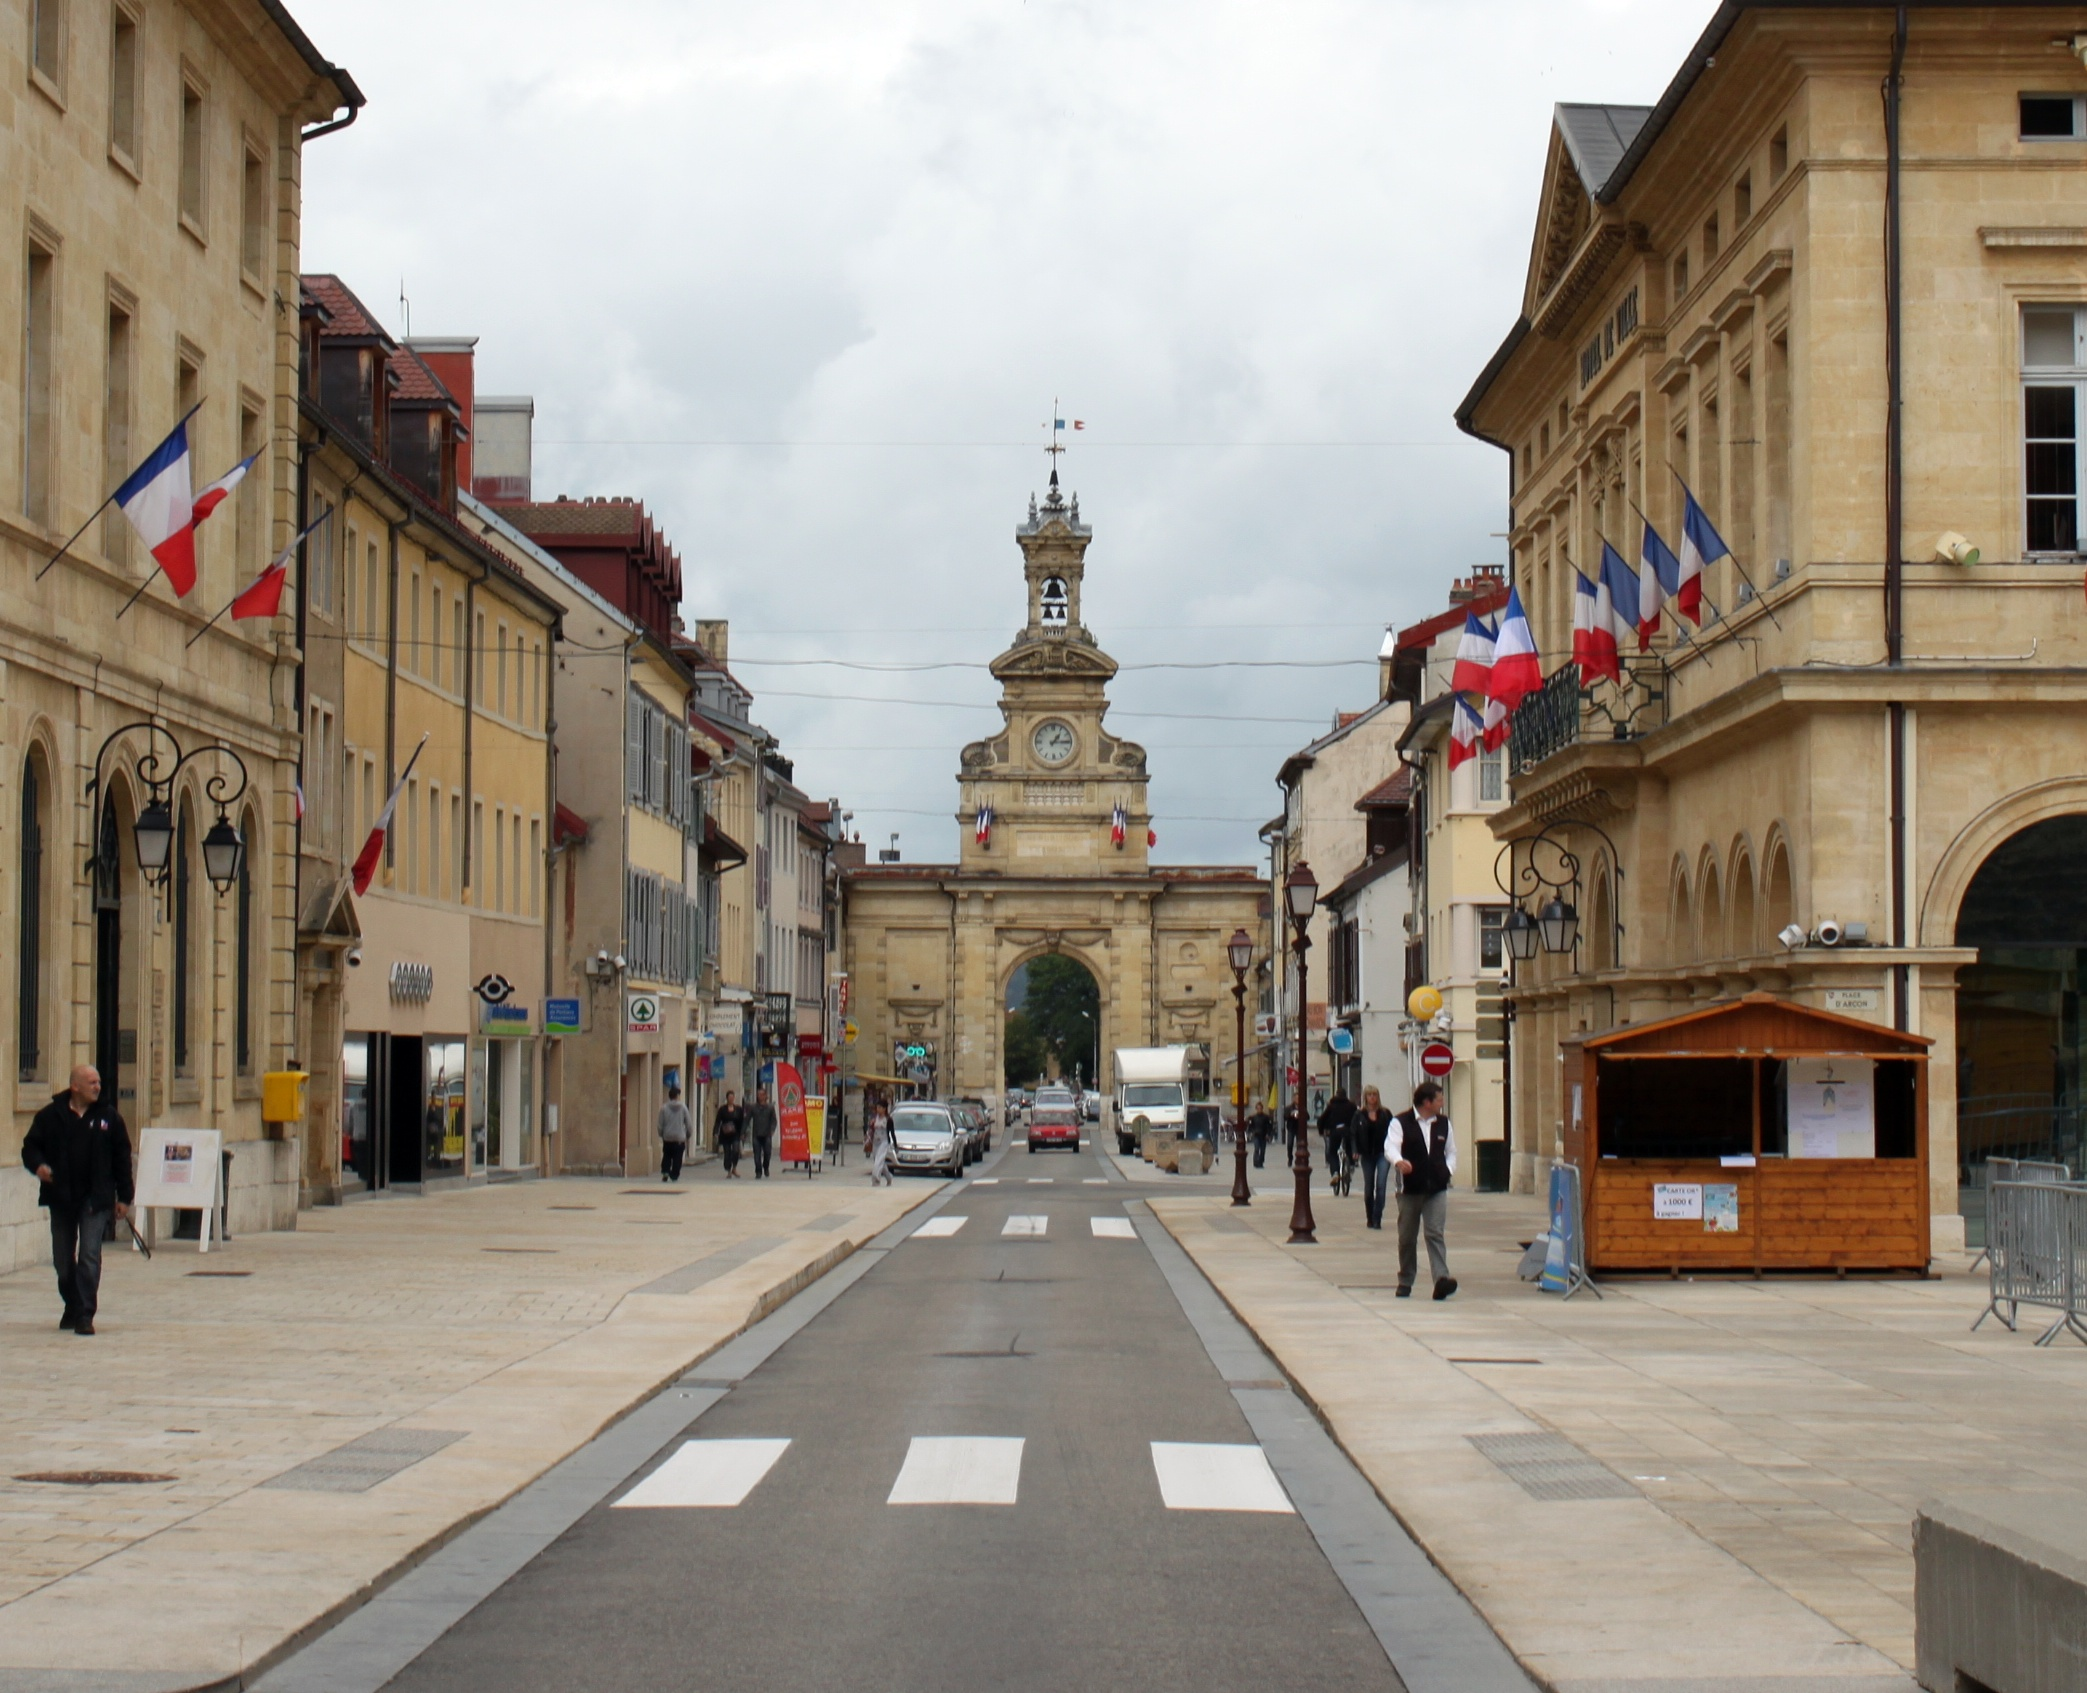 Pontarlier France  city photos gallery : Pontarlier Porte Saint Pierre 7 Wikimedia Commons